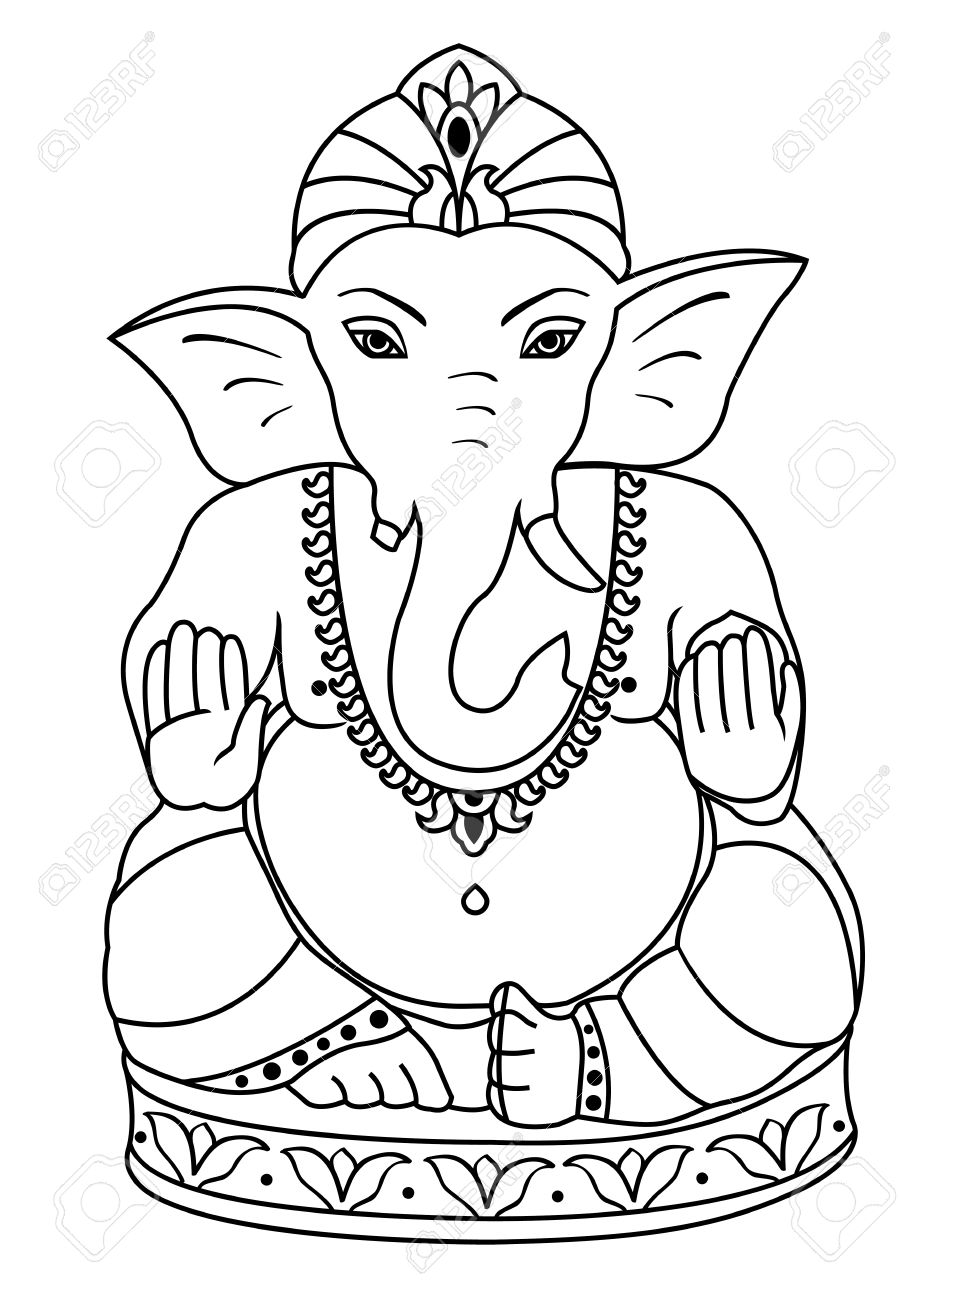 Vector vector lord ganesha outline sketch of ganesha for coloring book